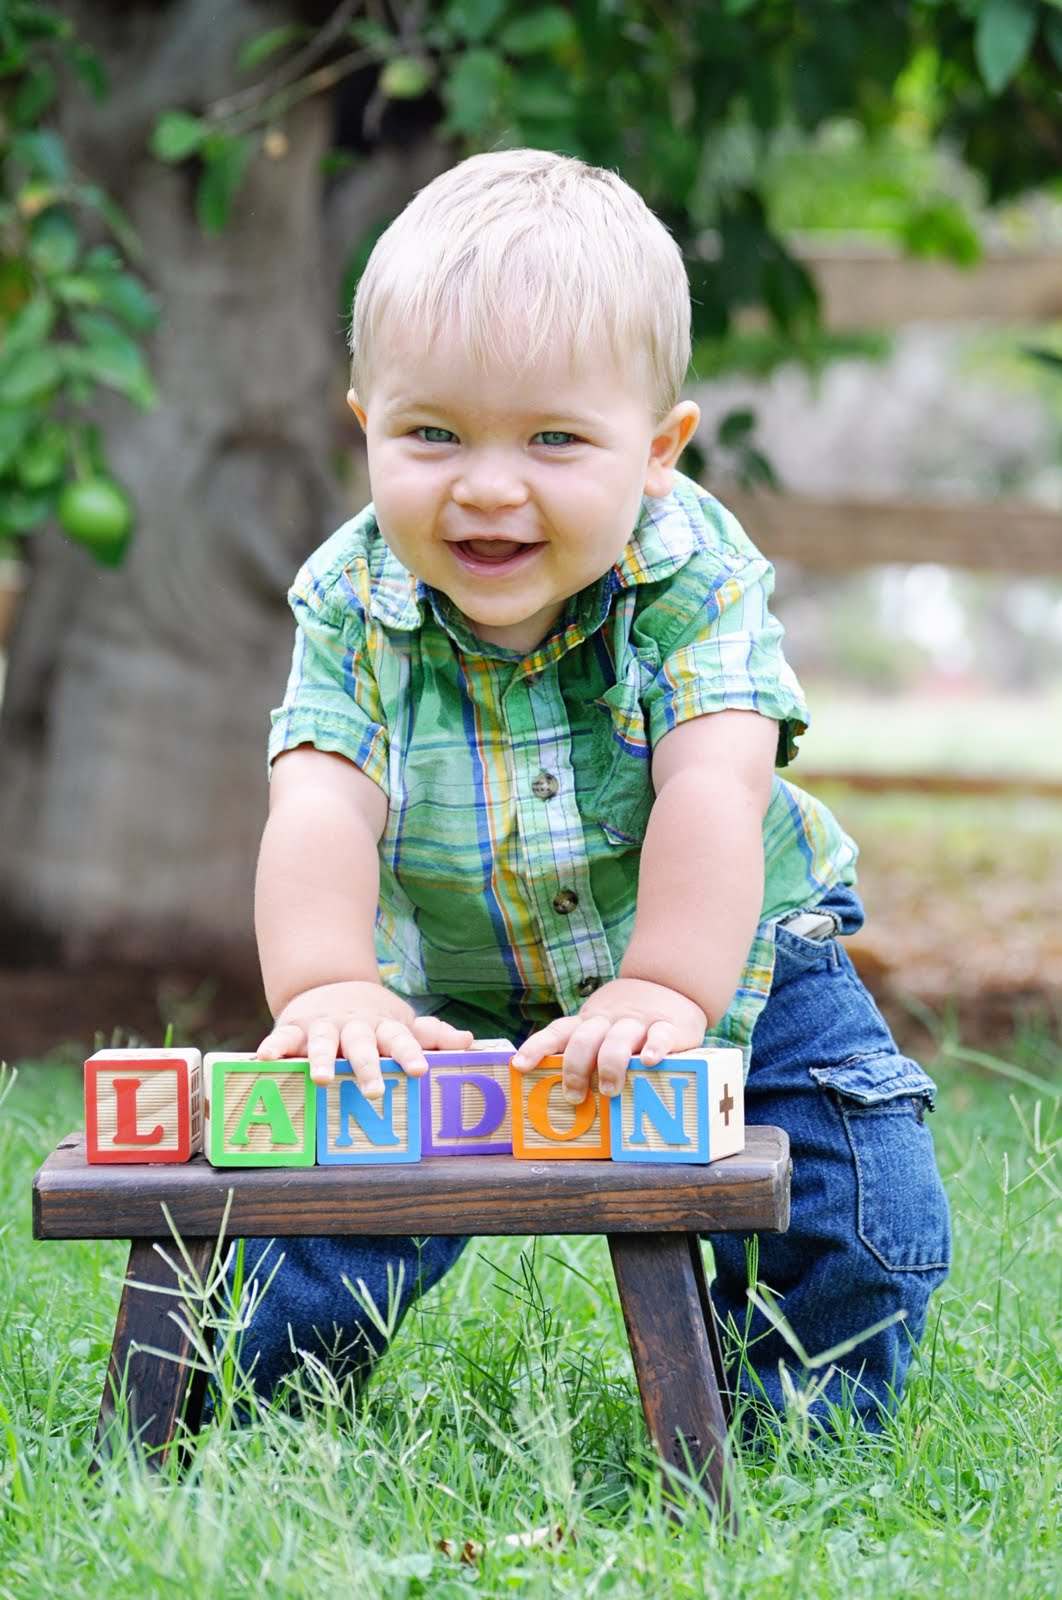 Year old session 125 photo shoot of your birthday boy girl bring